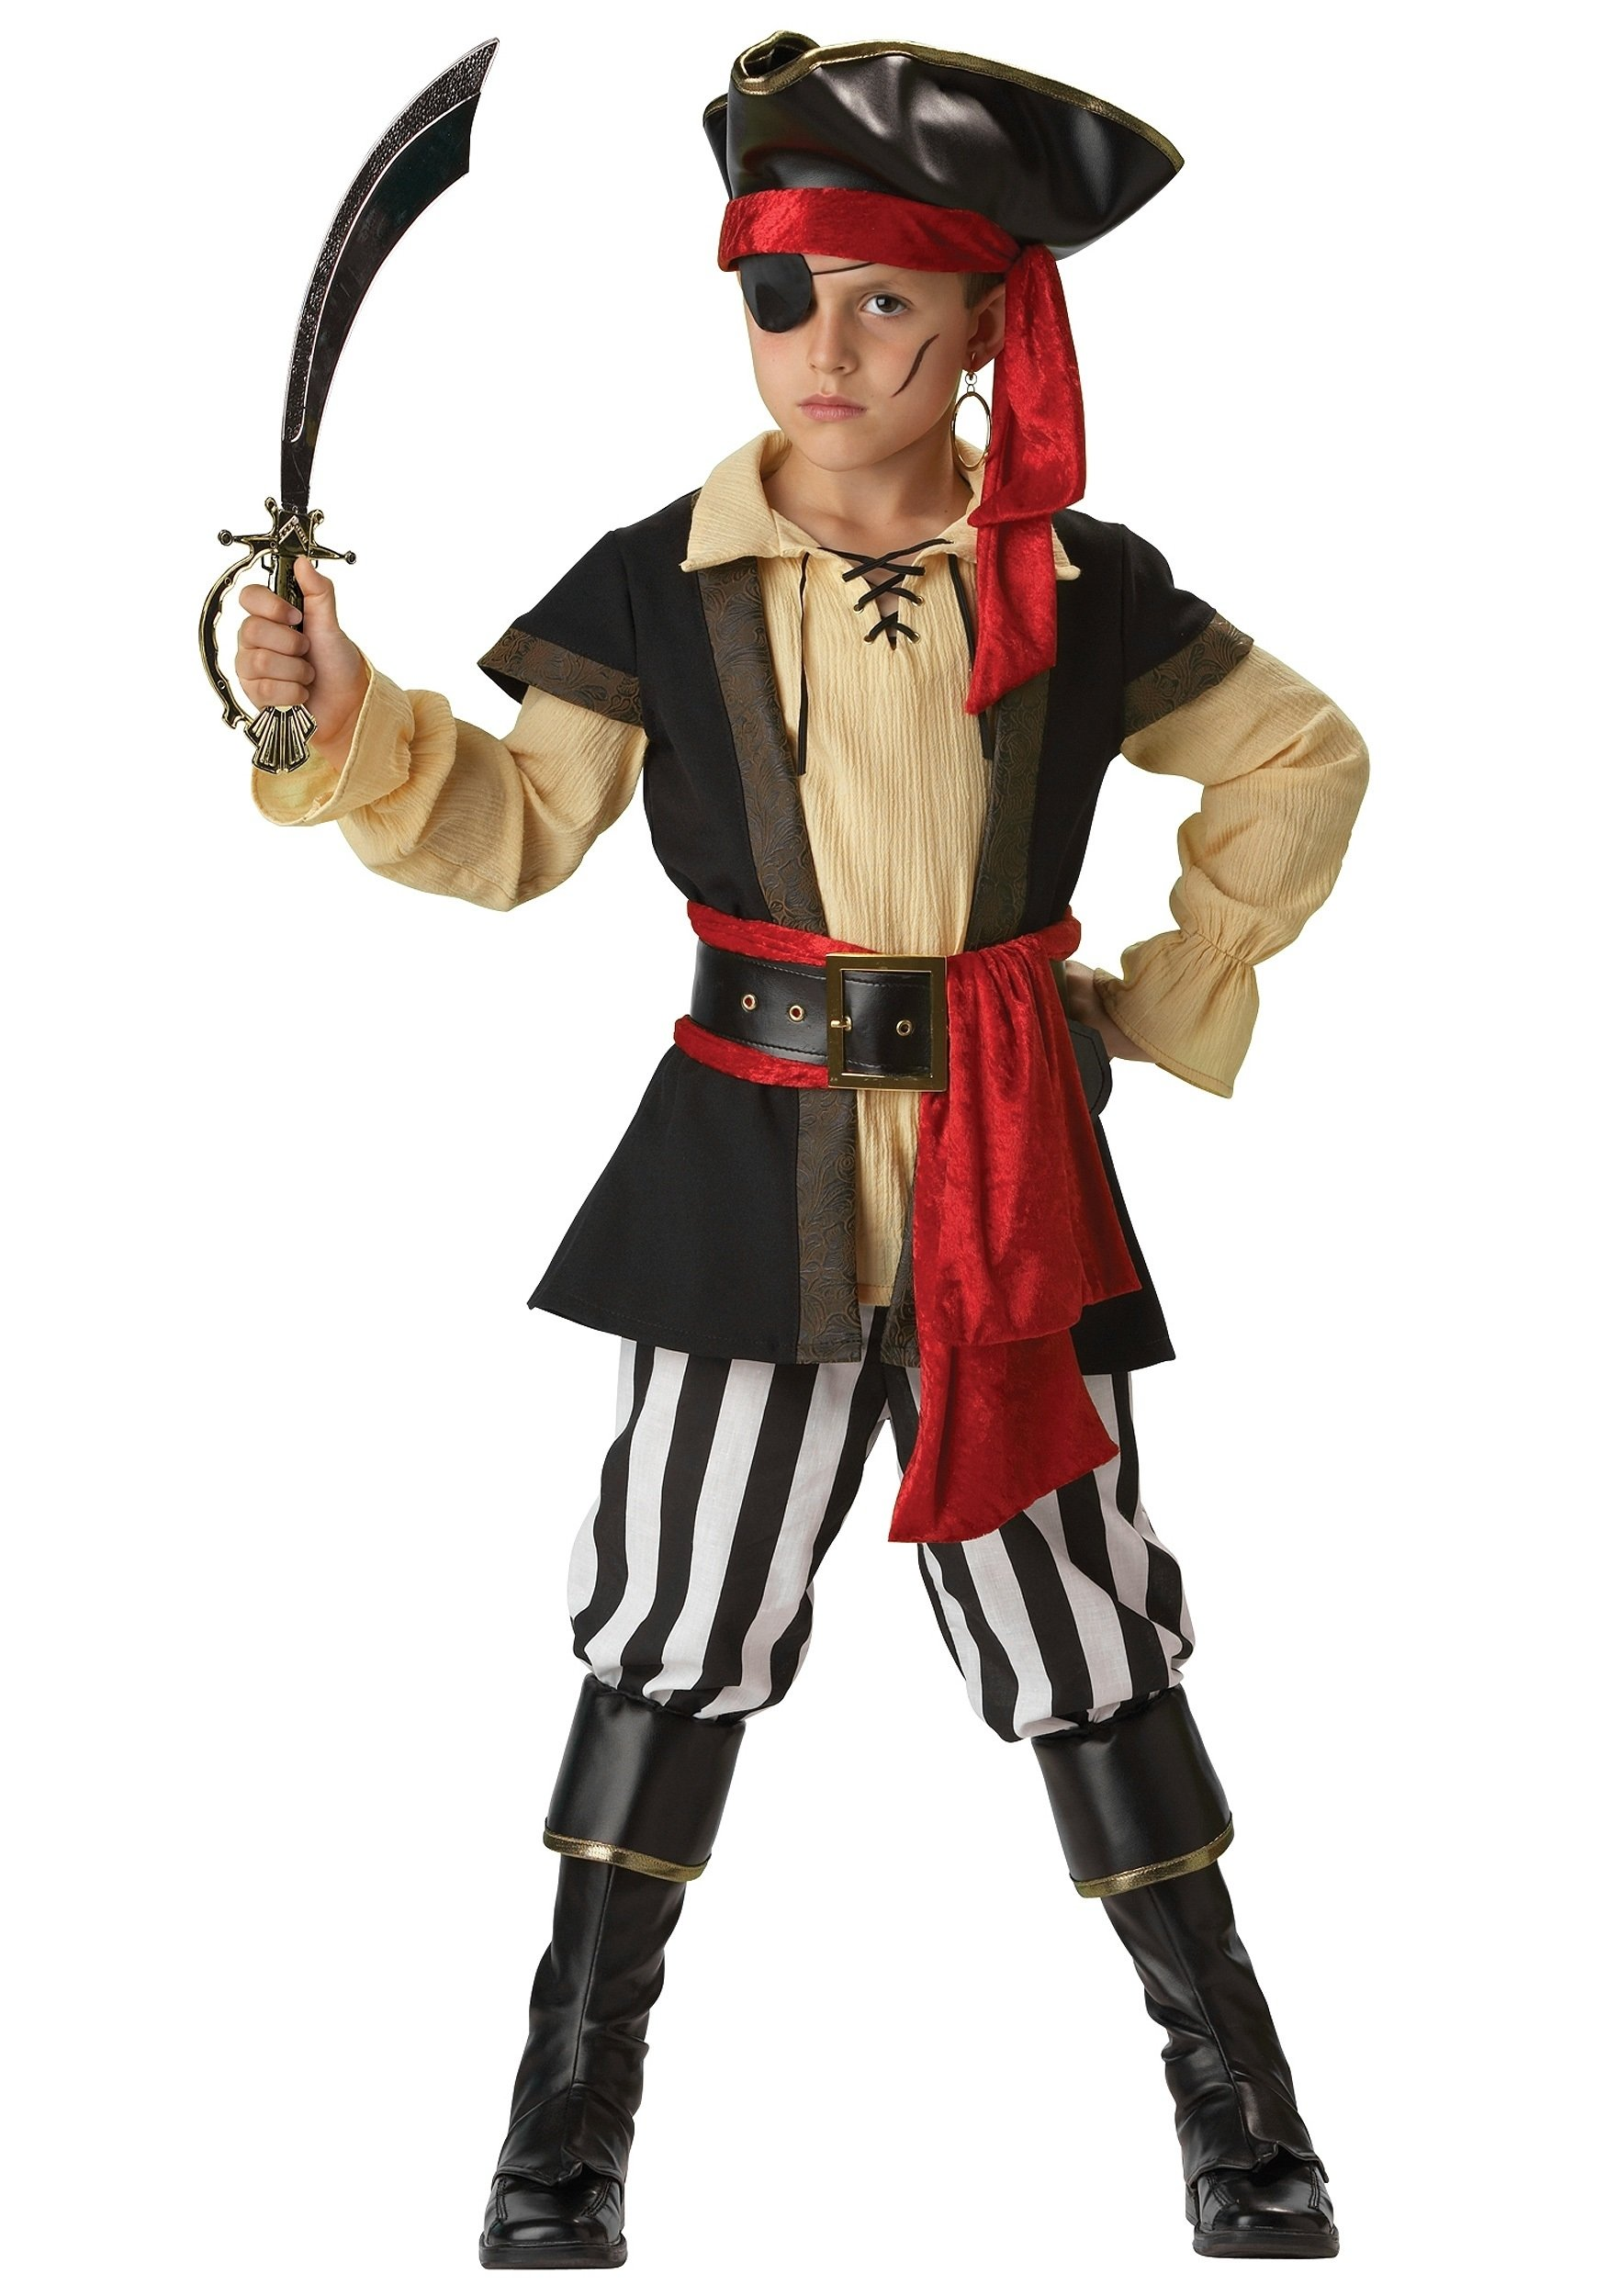 10 Ideal Halloween Costumes For Kids Ideas kids scoundrel pirate costume 1 2021